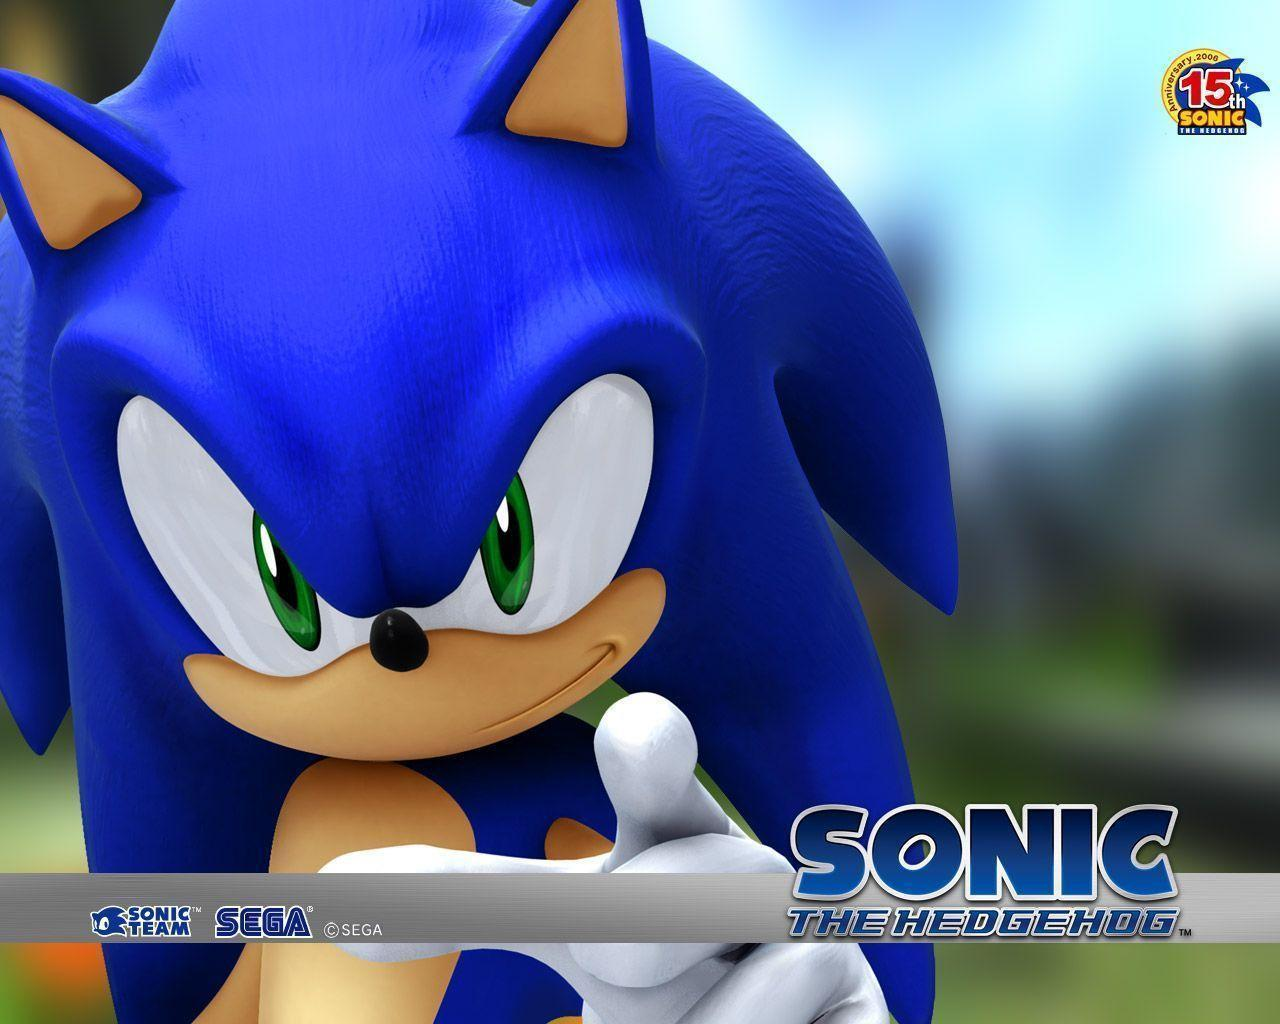 Sonic the Hedgehog Wallpaper 78 | HD Background Wallpaper